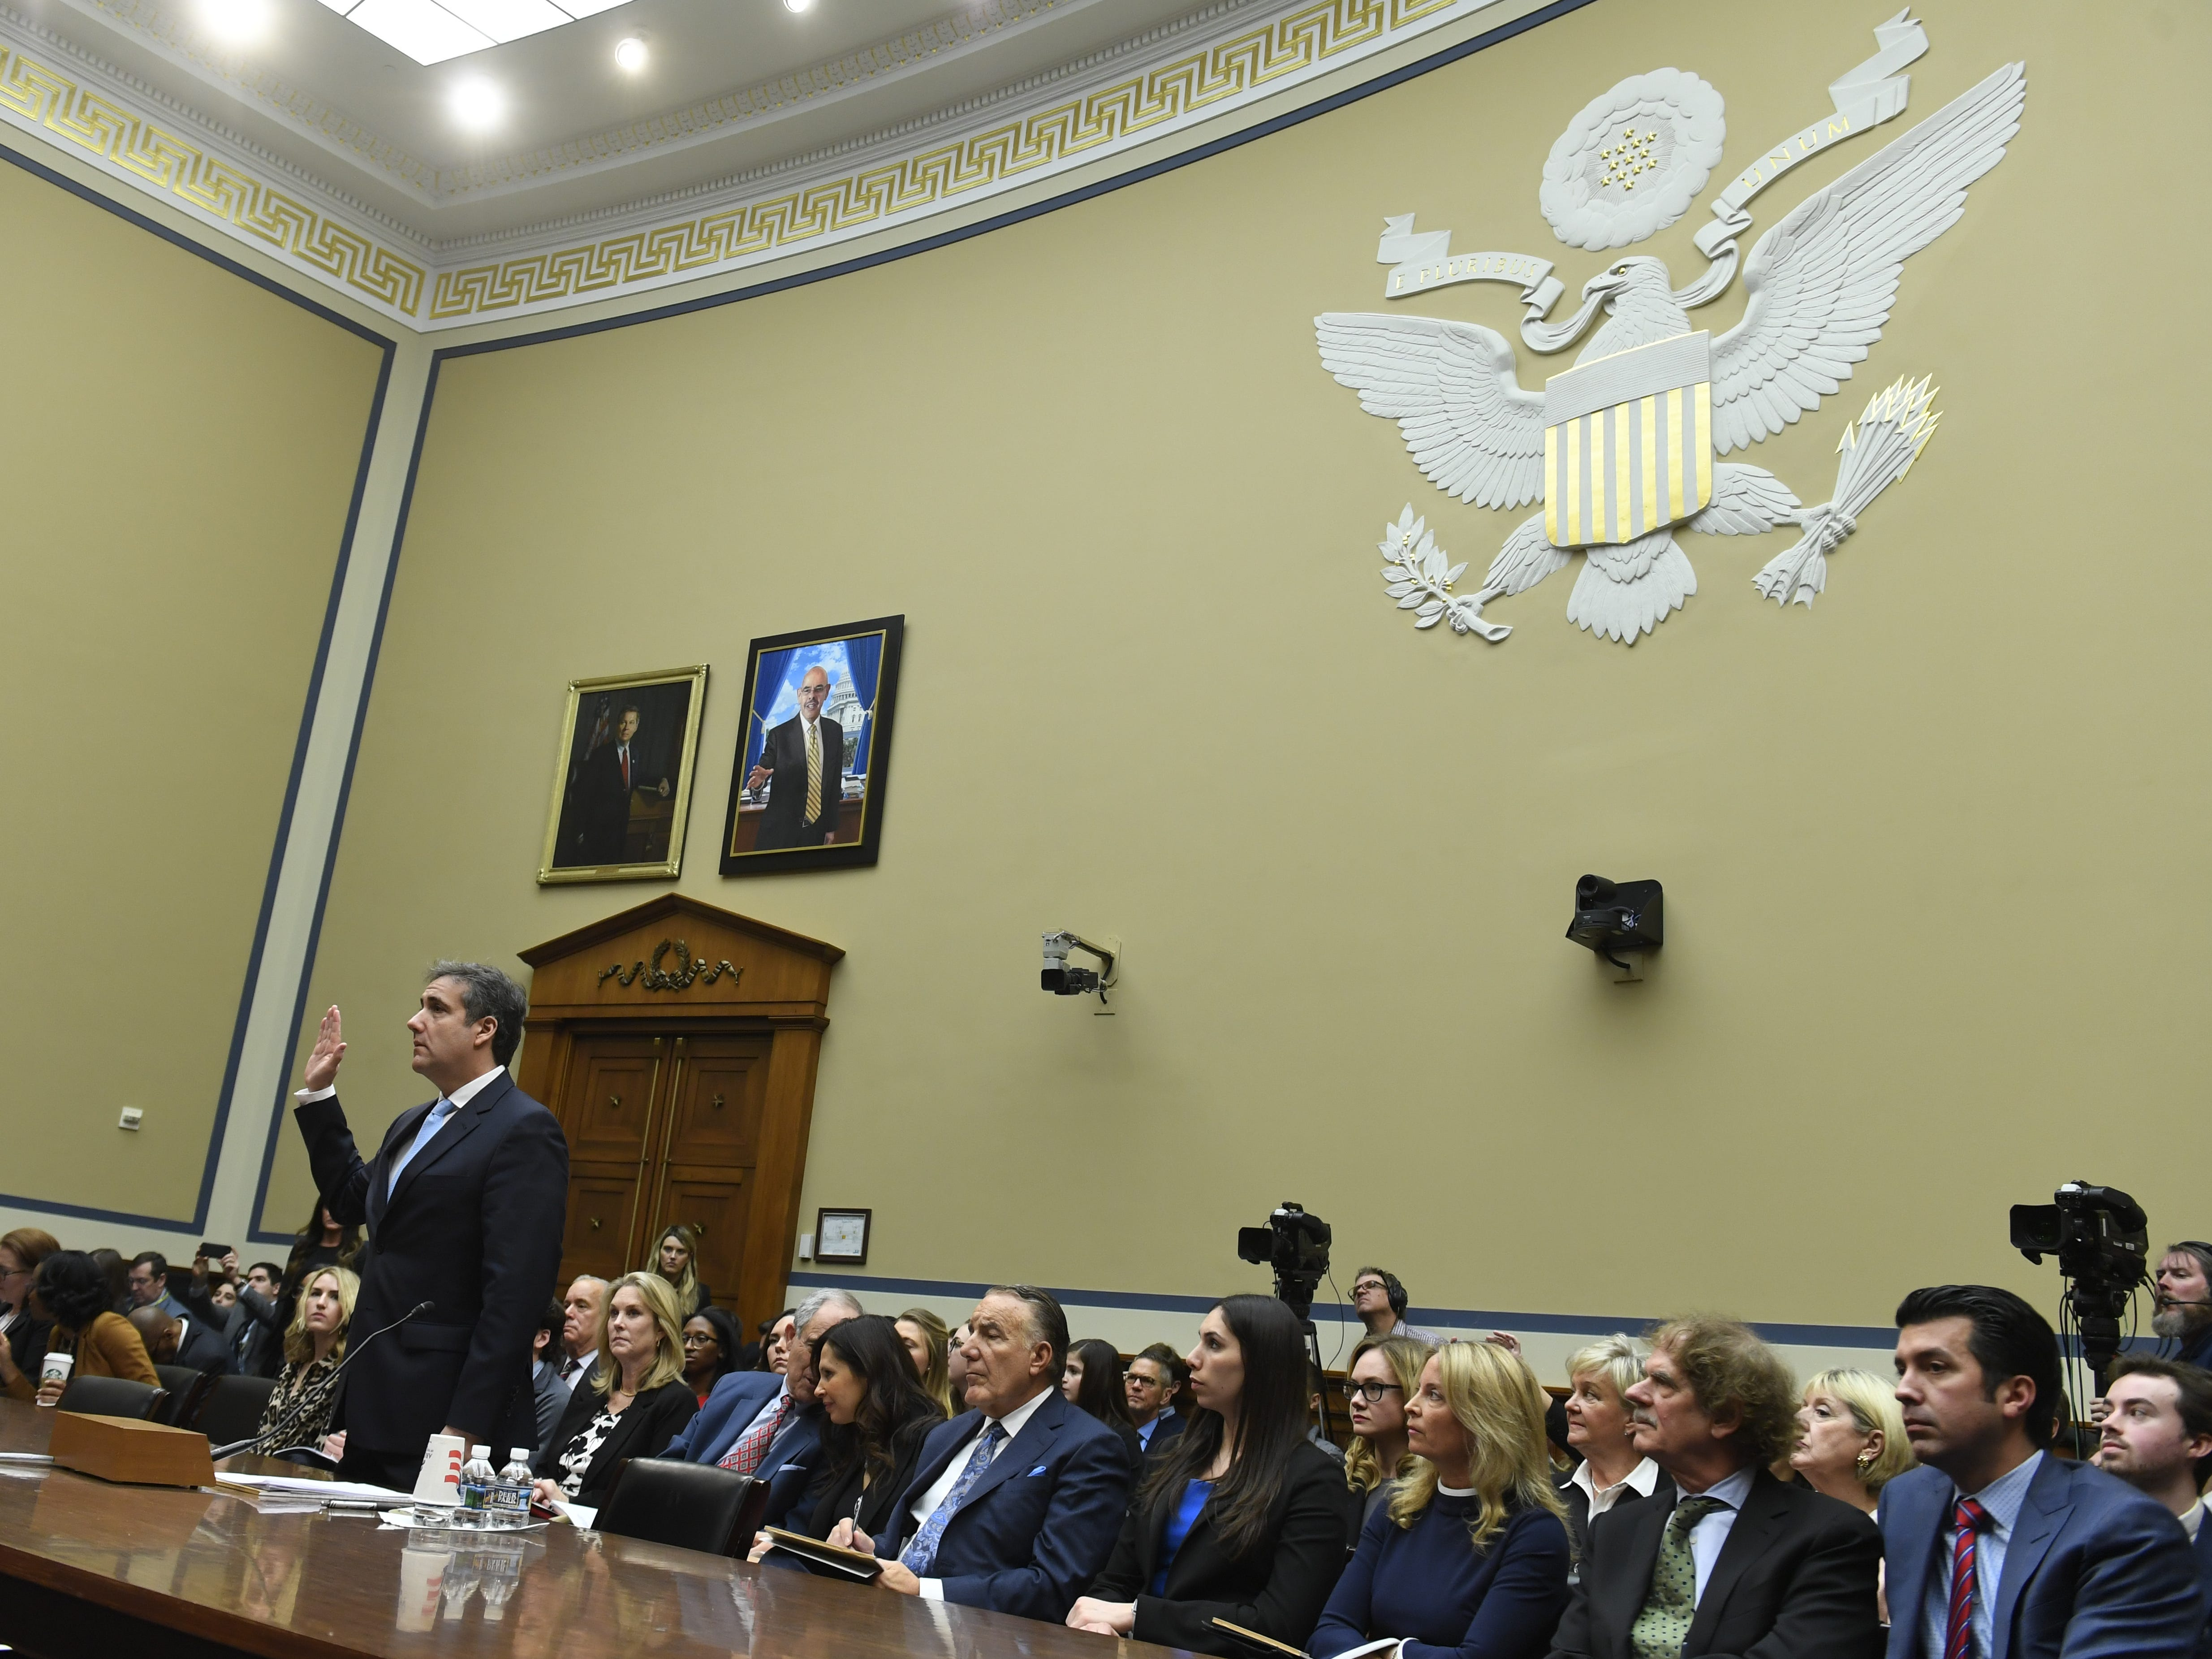 Michael Cohen, President Donald Trump's longtime personal attorney, testifies before the House Committee on Oversight and Reform on Feb. 27, 2019 in Washington.